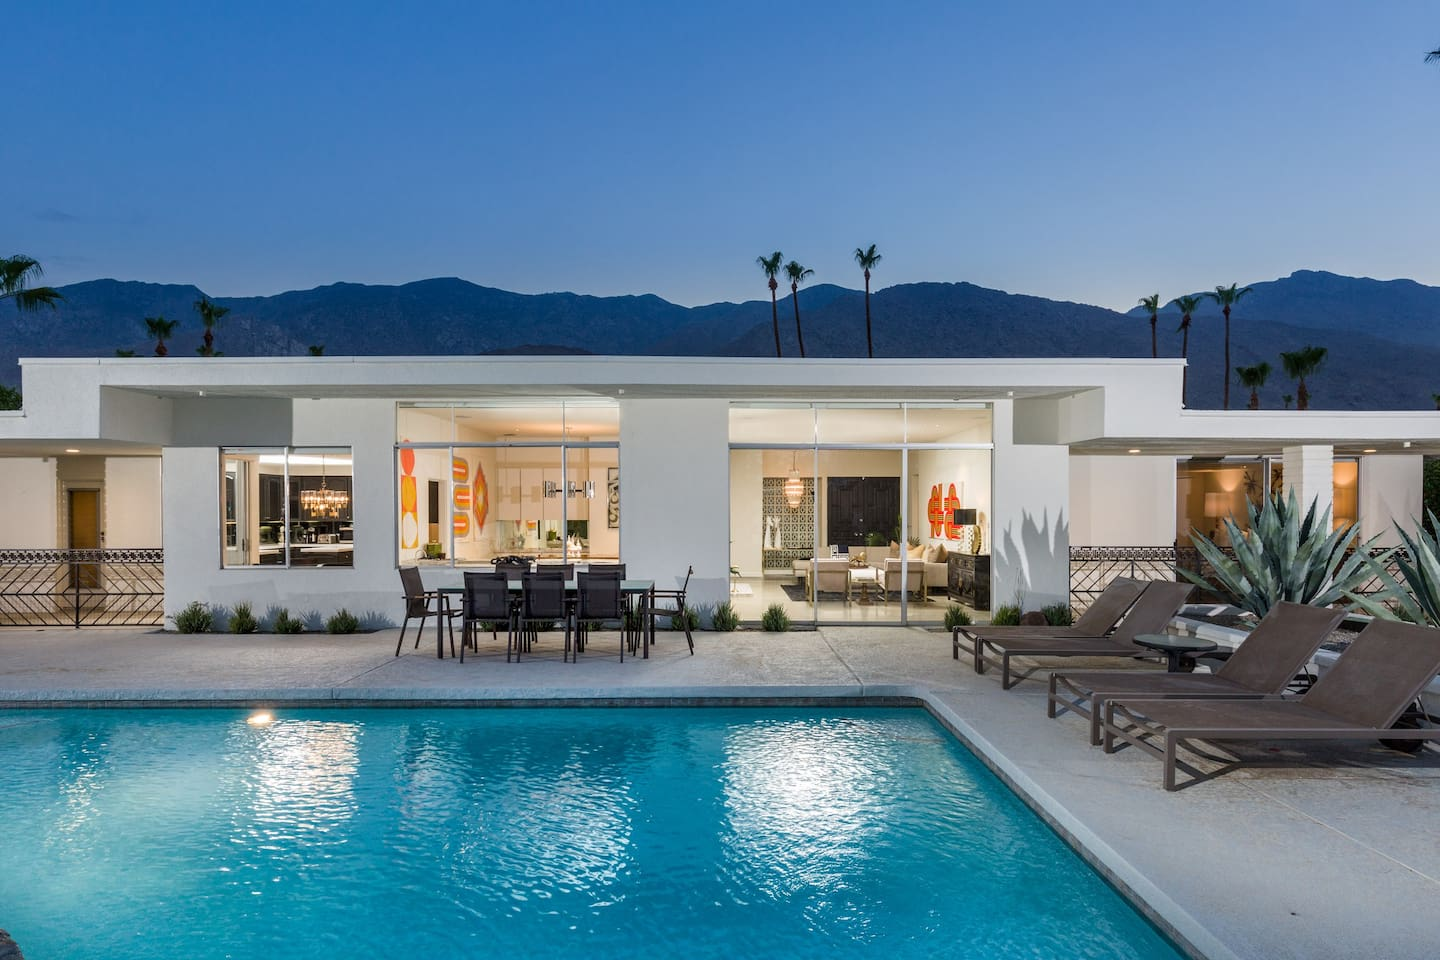 This is it! Your quintessential Indoor-Outdoor Palm Springs Modern Vacay Experience